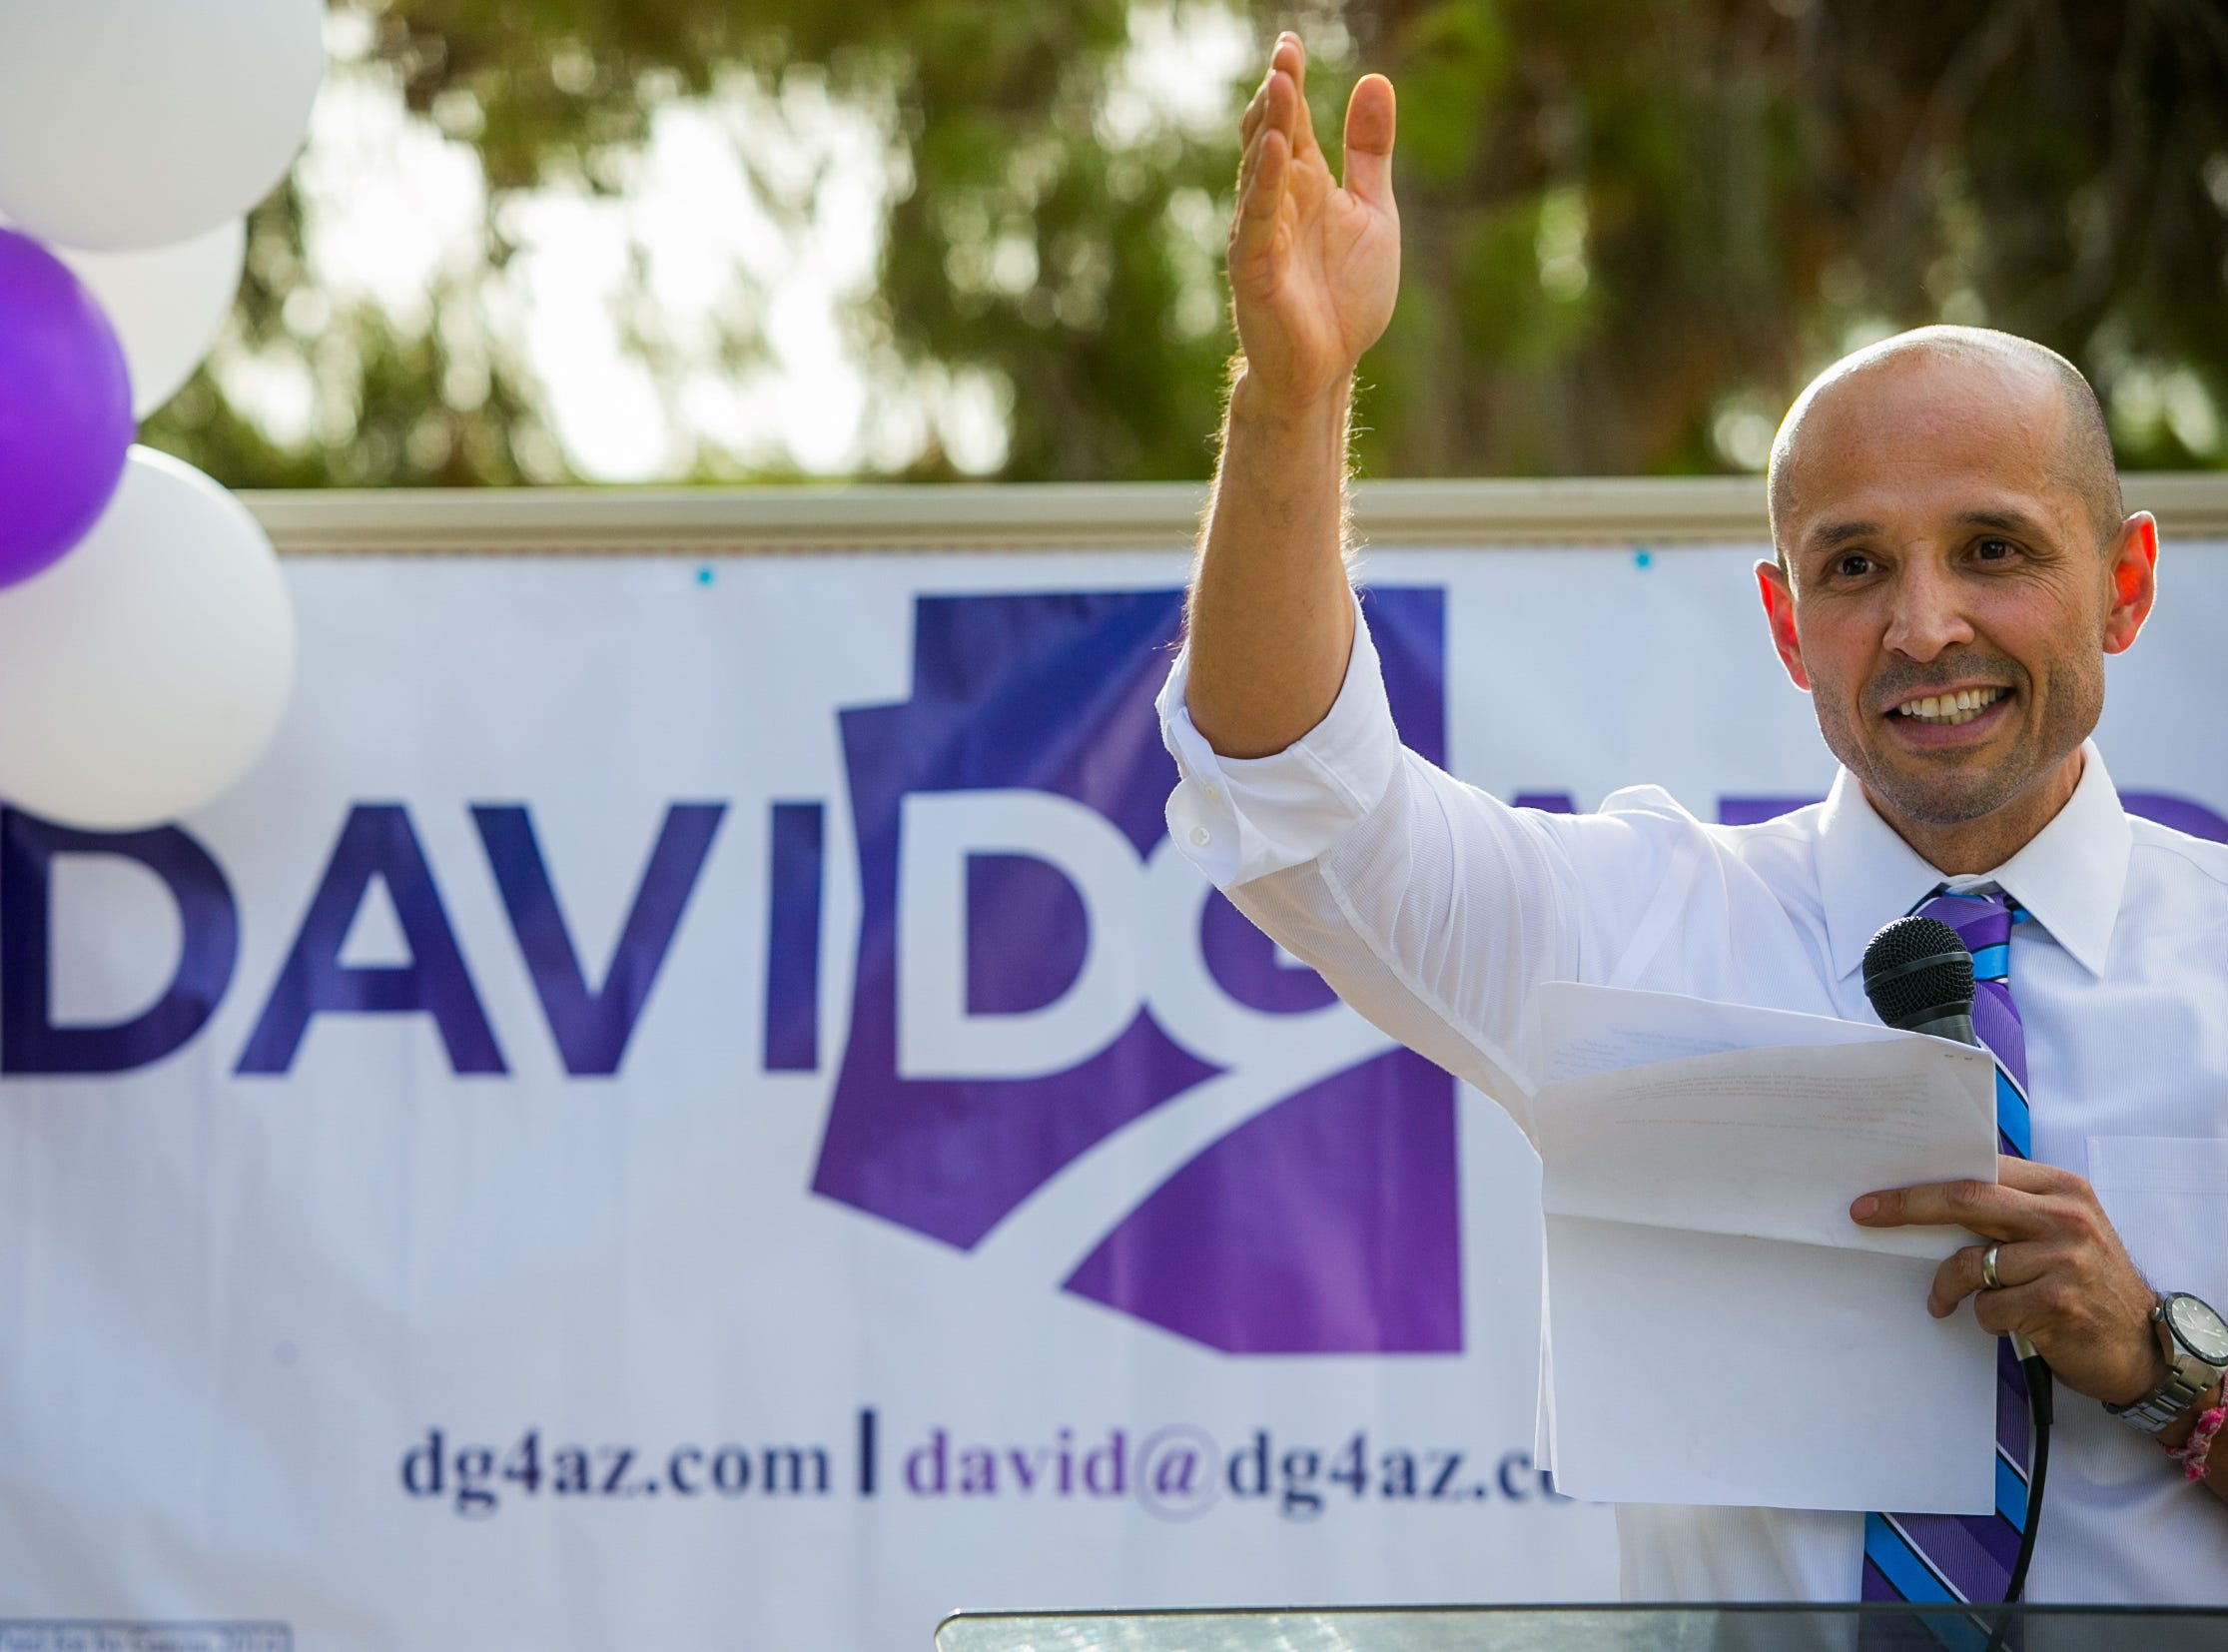 David Garcia in September 2013 when he announced his official campaign for Arizona Superintendent of Public Instruction at Lindbergh Elementary School in Mesa.